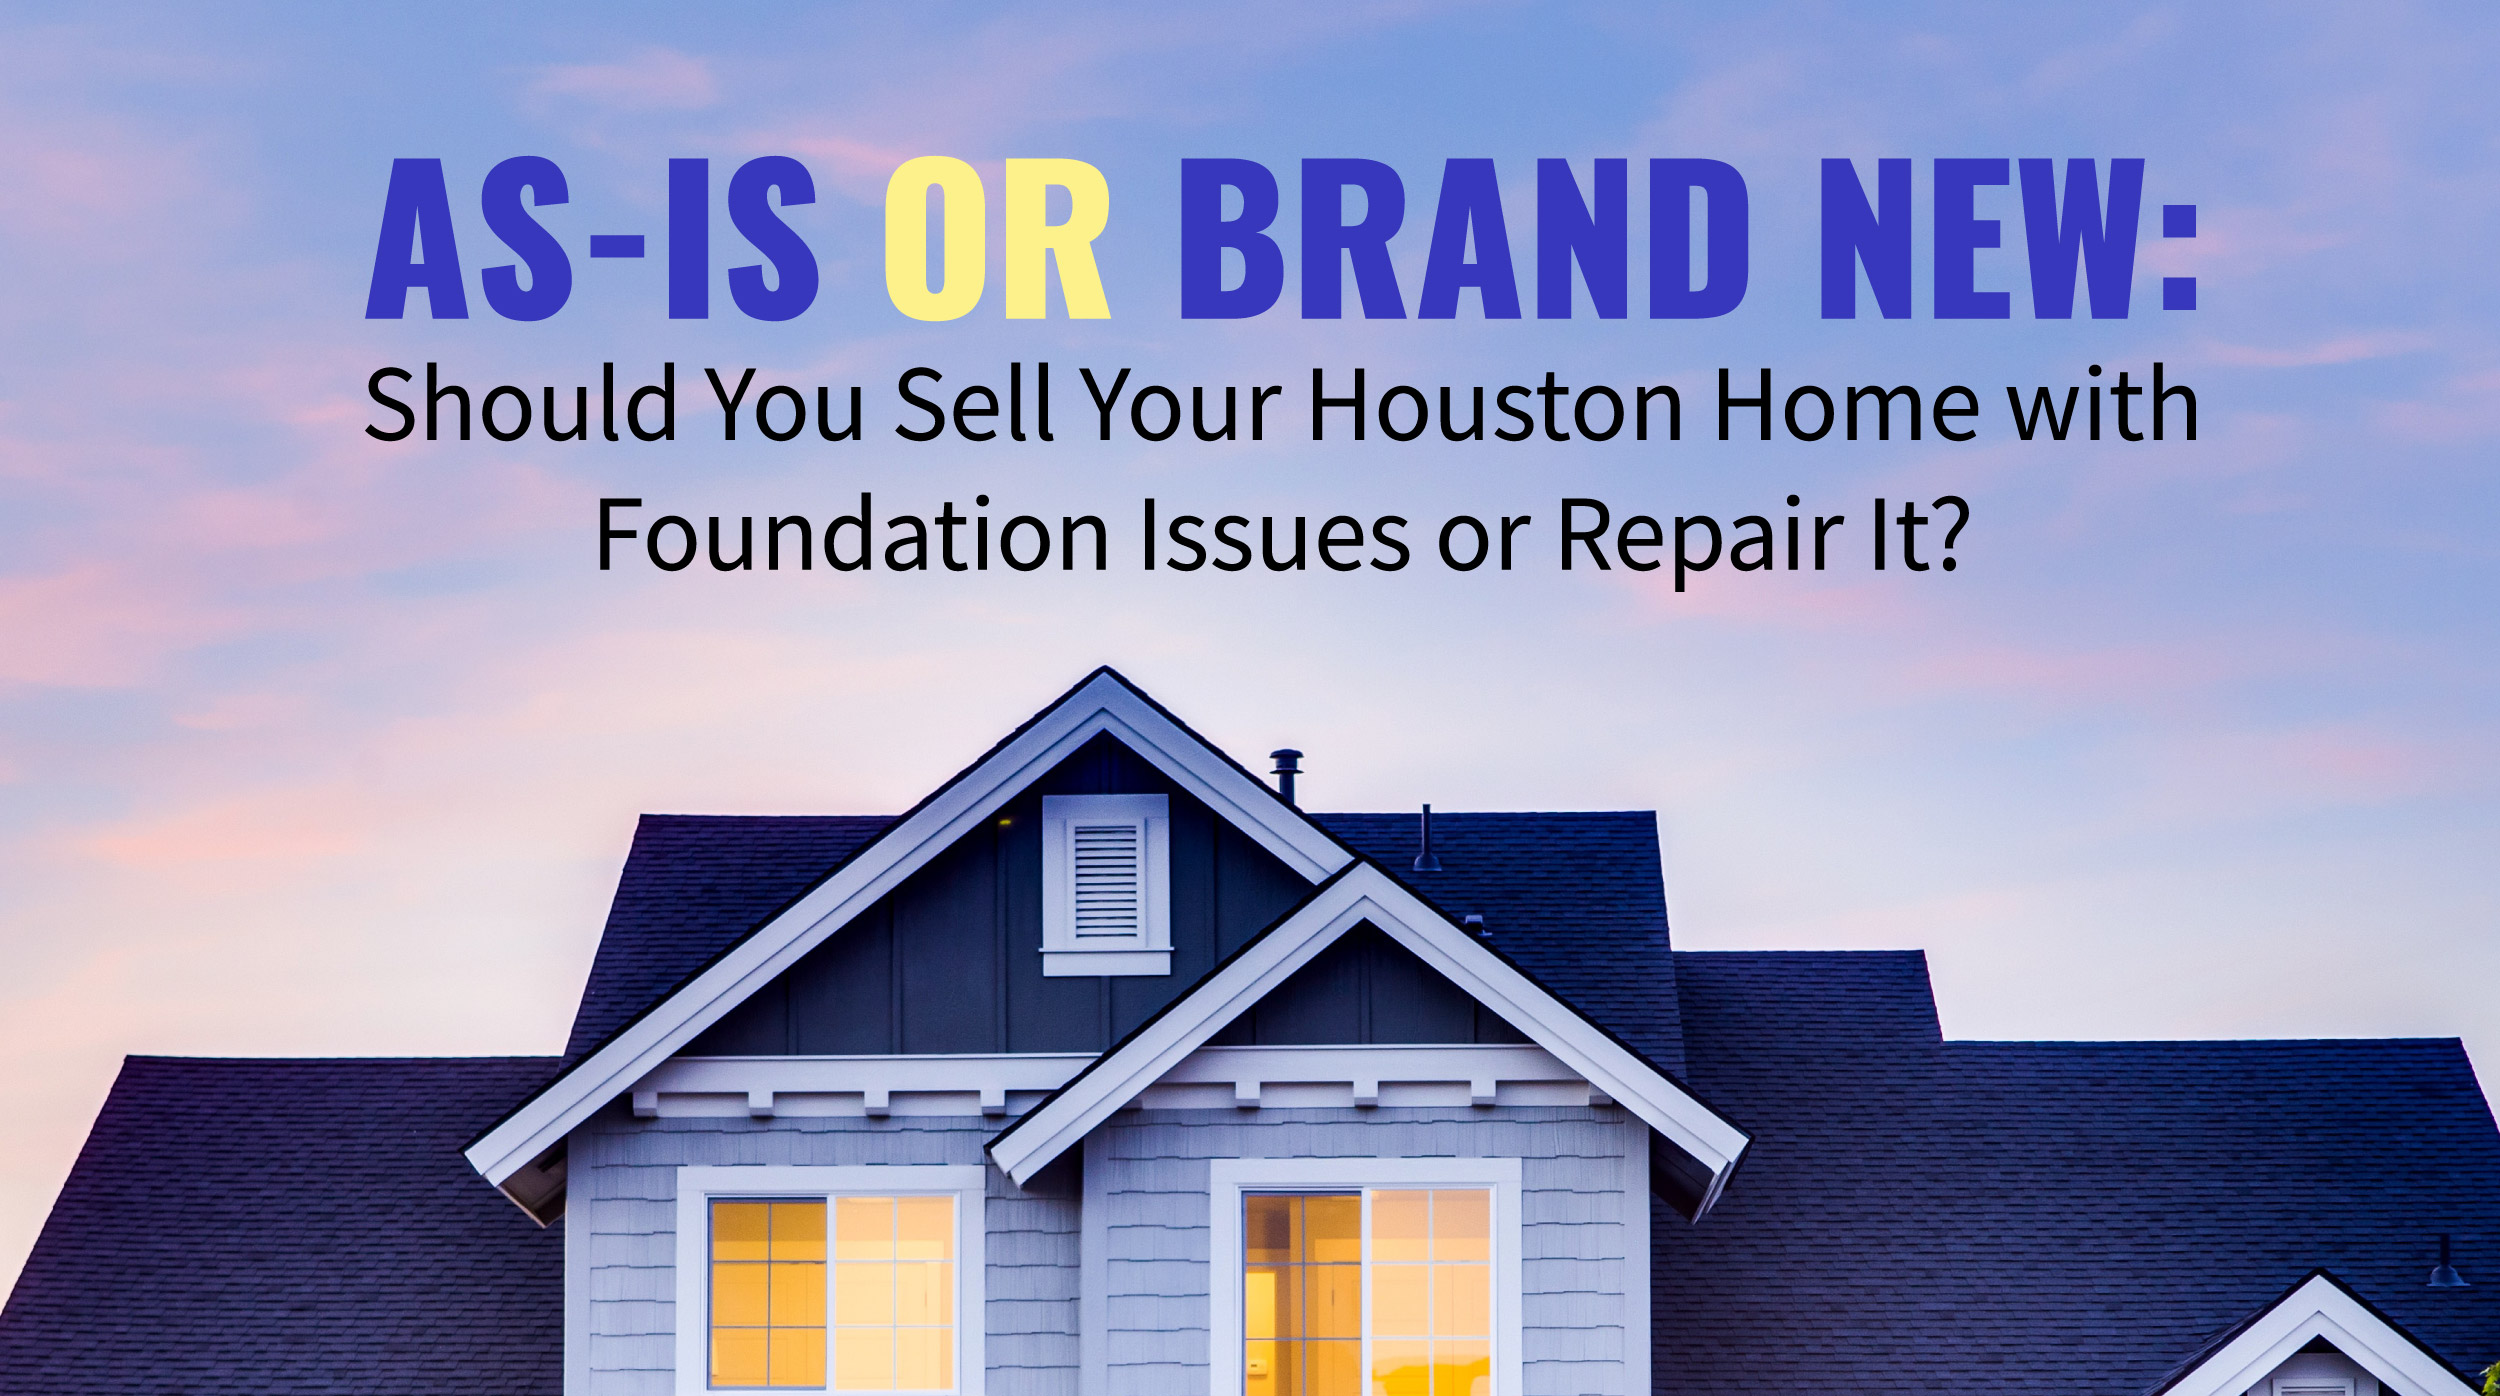 Sell Your Home With Foundation Issues or Repair it First?